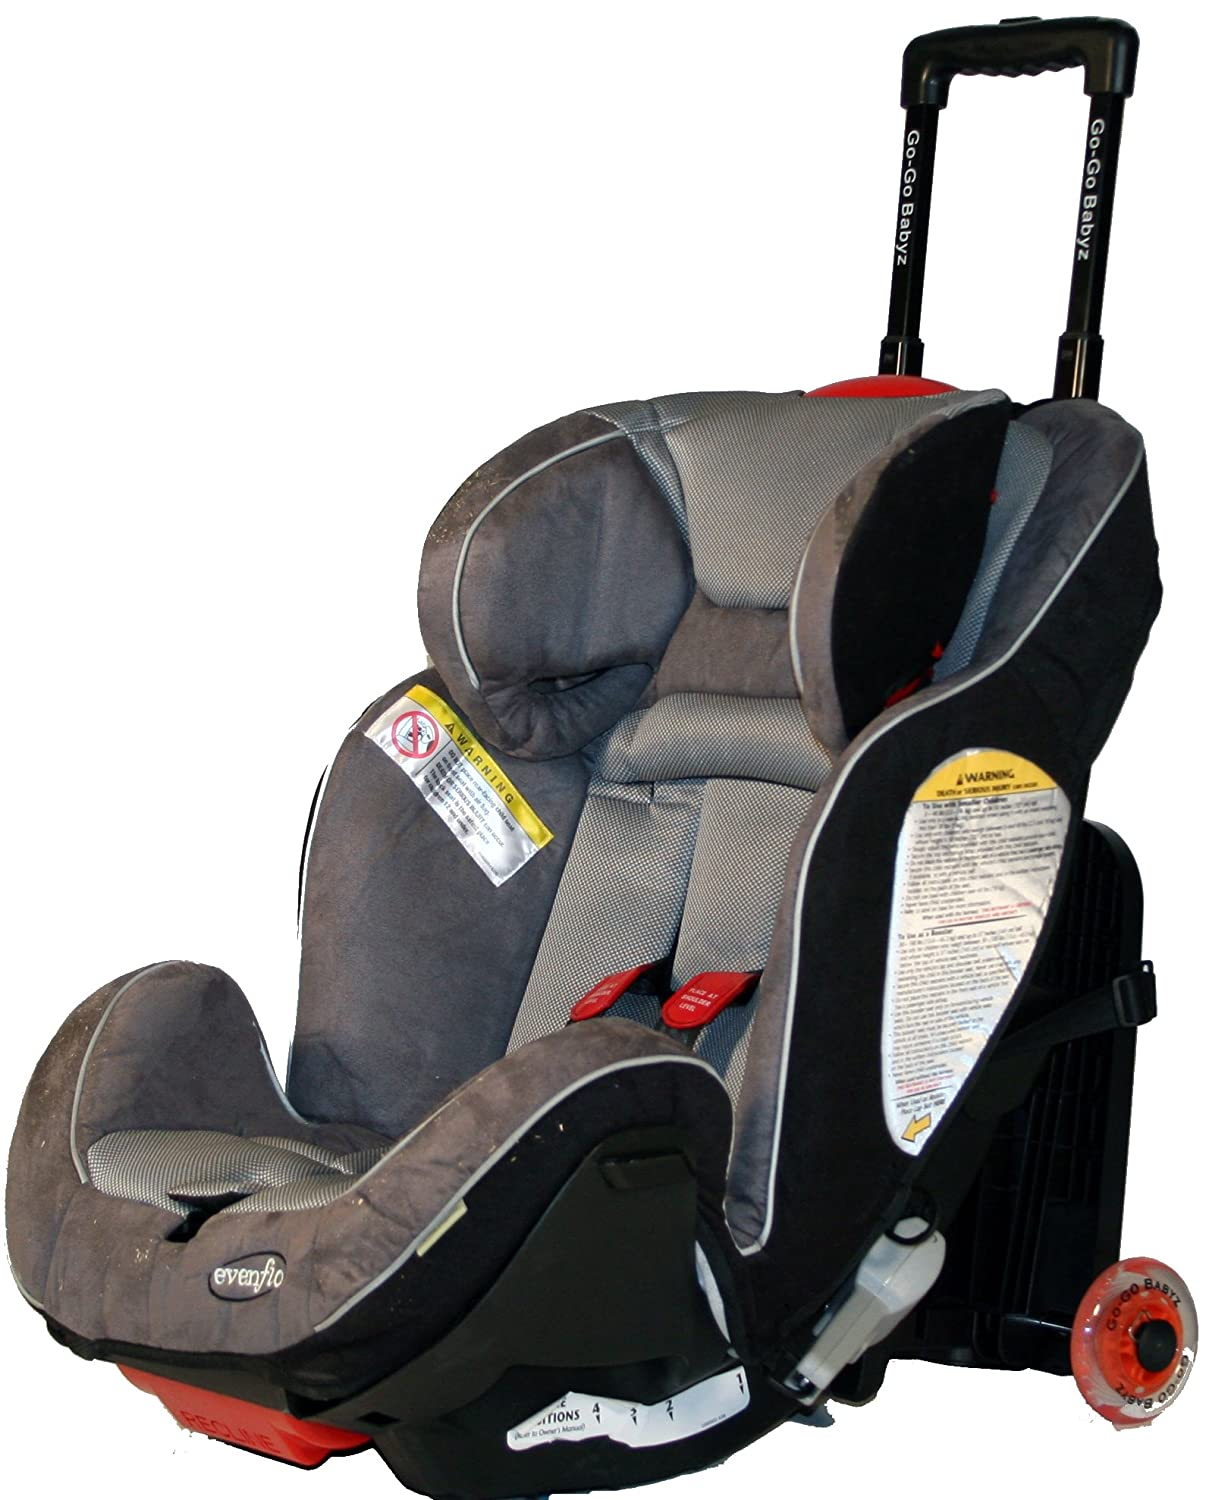 seat booster children travel view larger safe travel car seat safe travel car seat. Black Bedroom Furniture Sets. Home Design Ideas